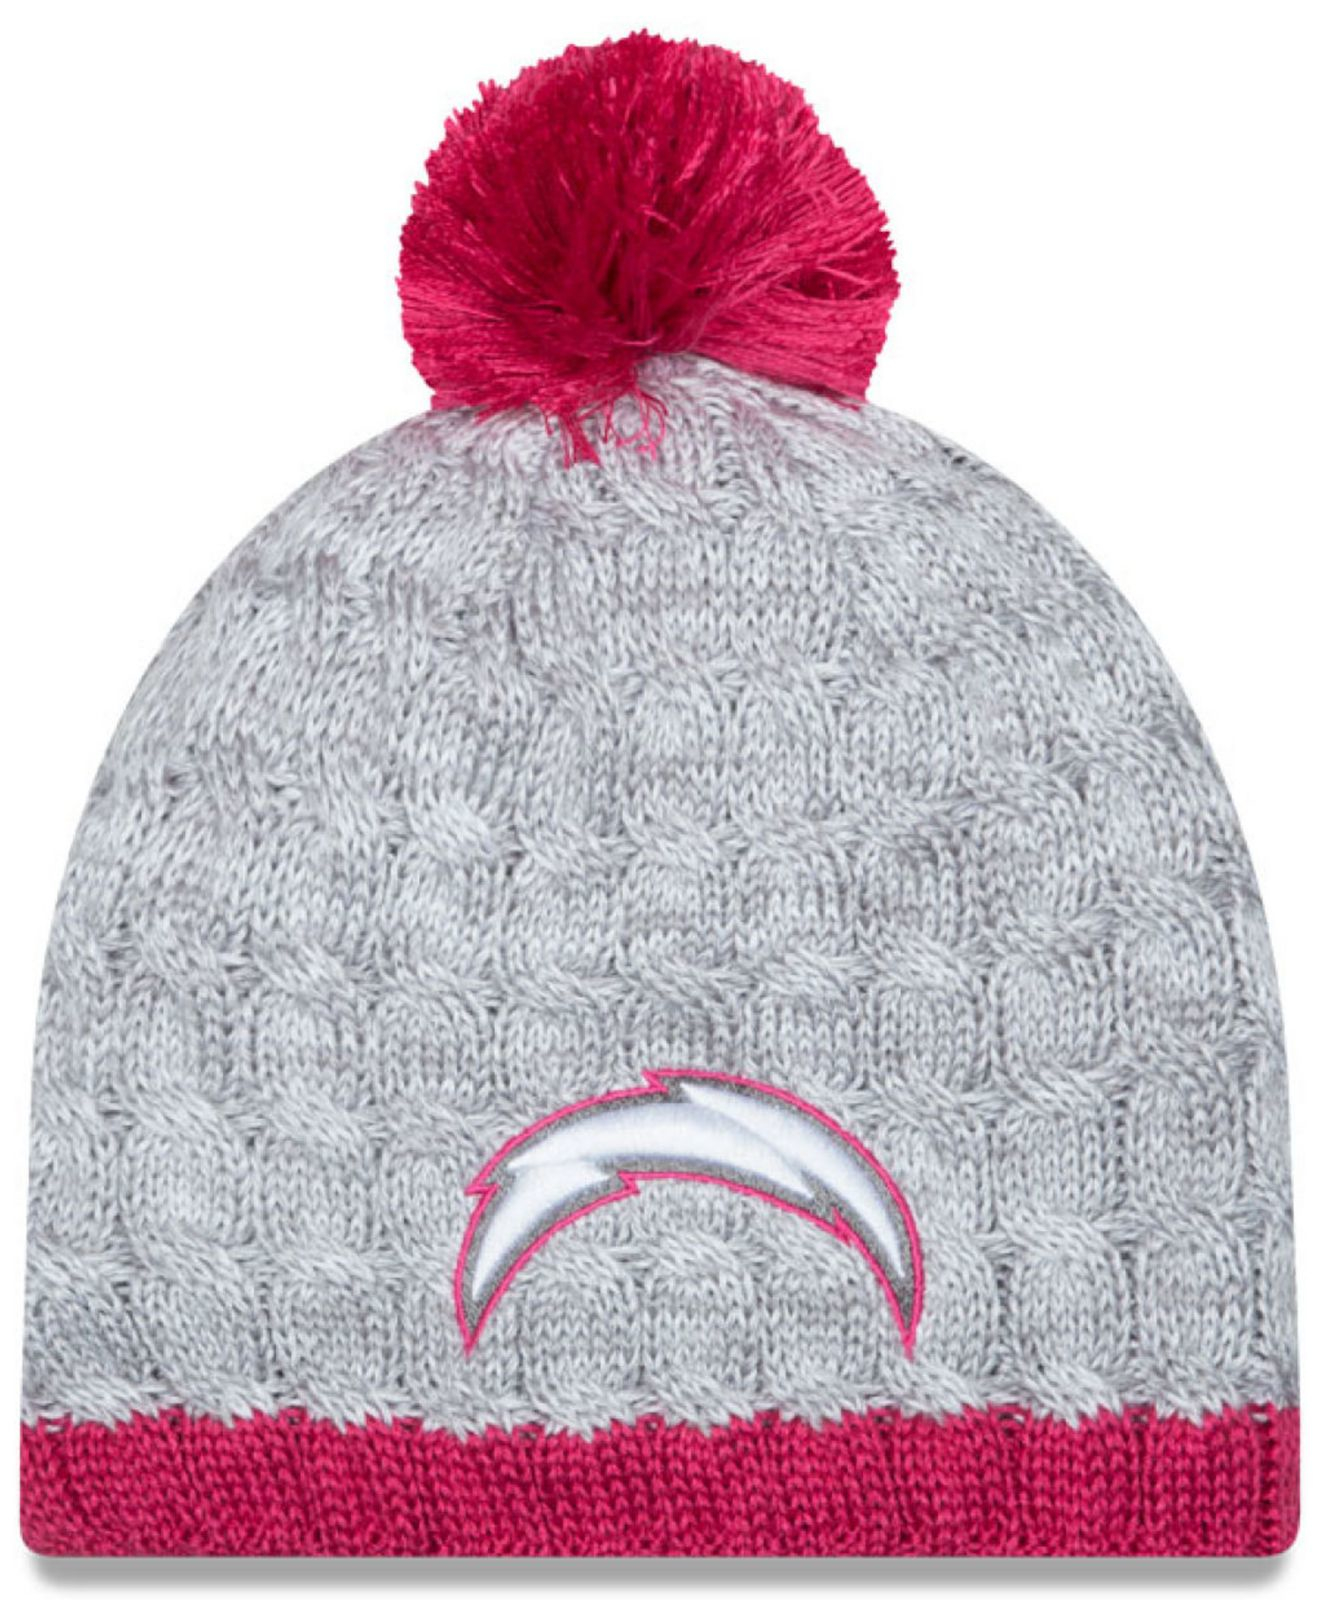 Women S San Diego Chargers New Era Gray Pink Breast Cancer